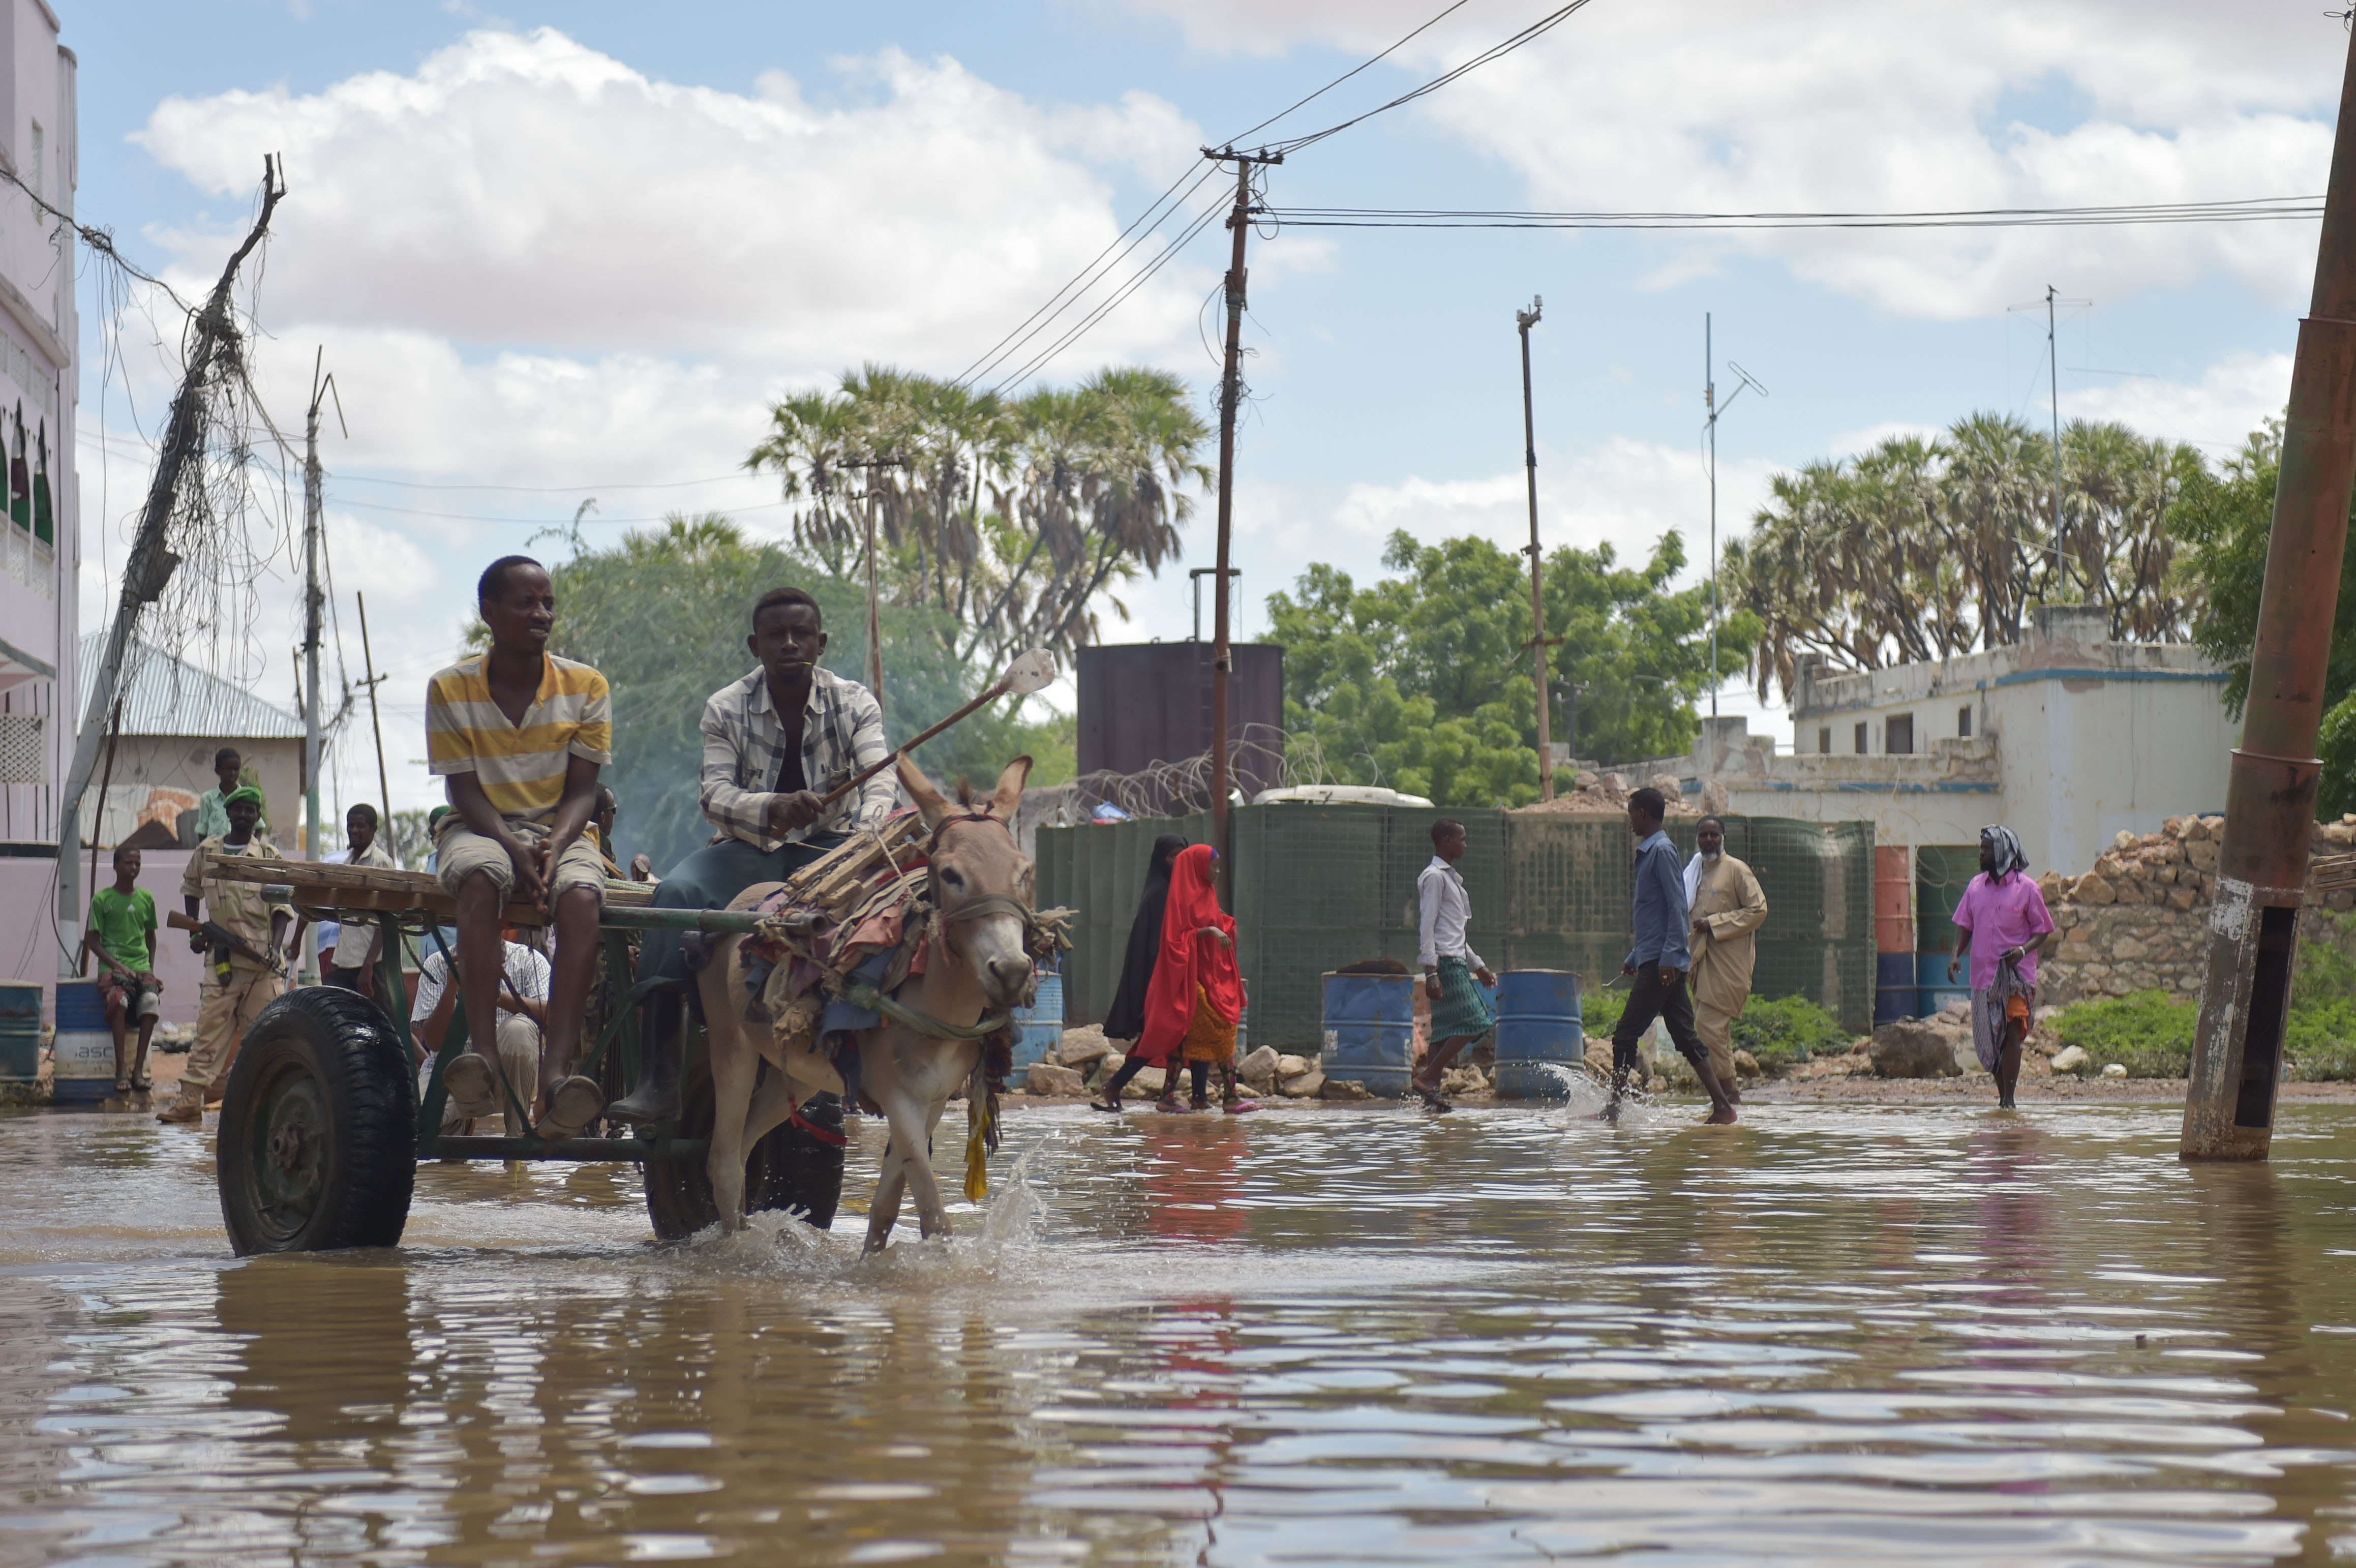 File:2016 27 Beletweyne Flooding-4 (27309119055).jpg - Wikimedia Commons